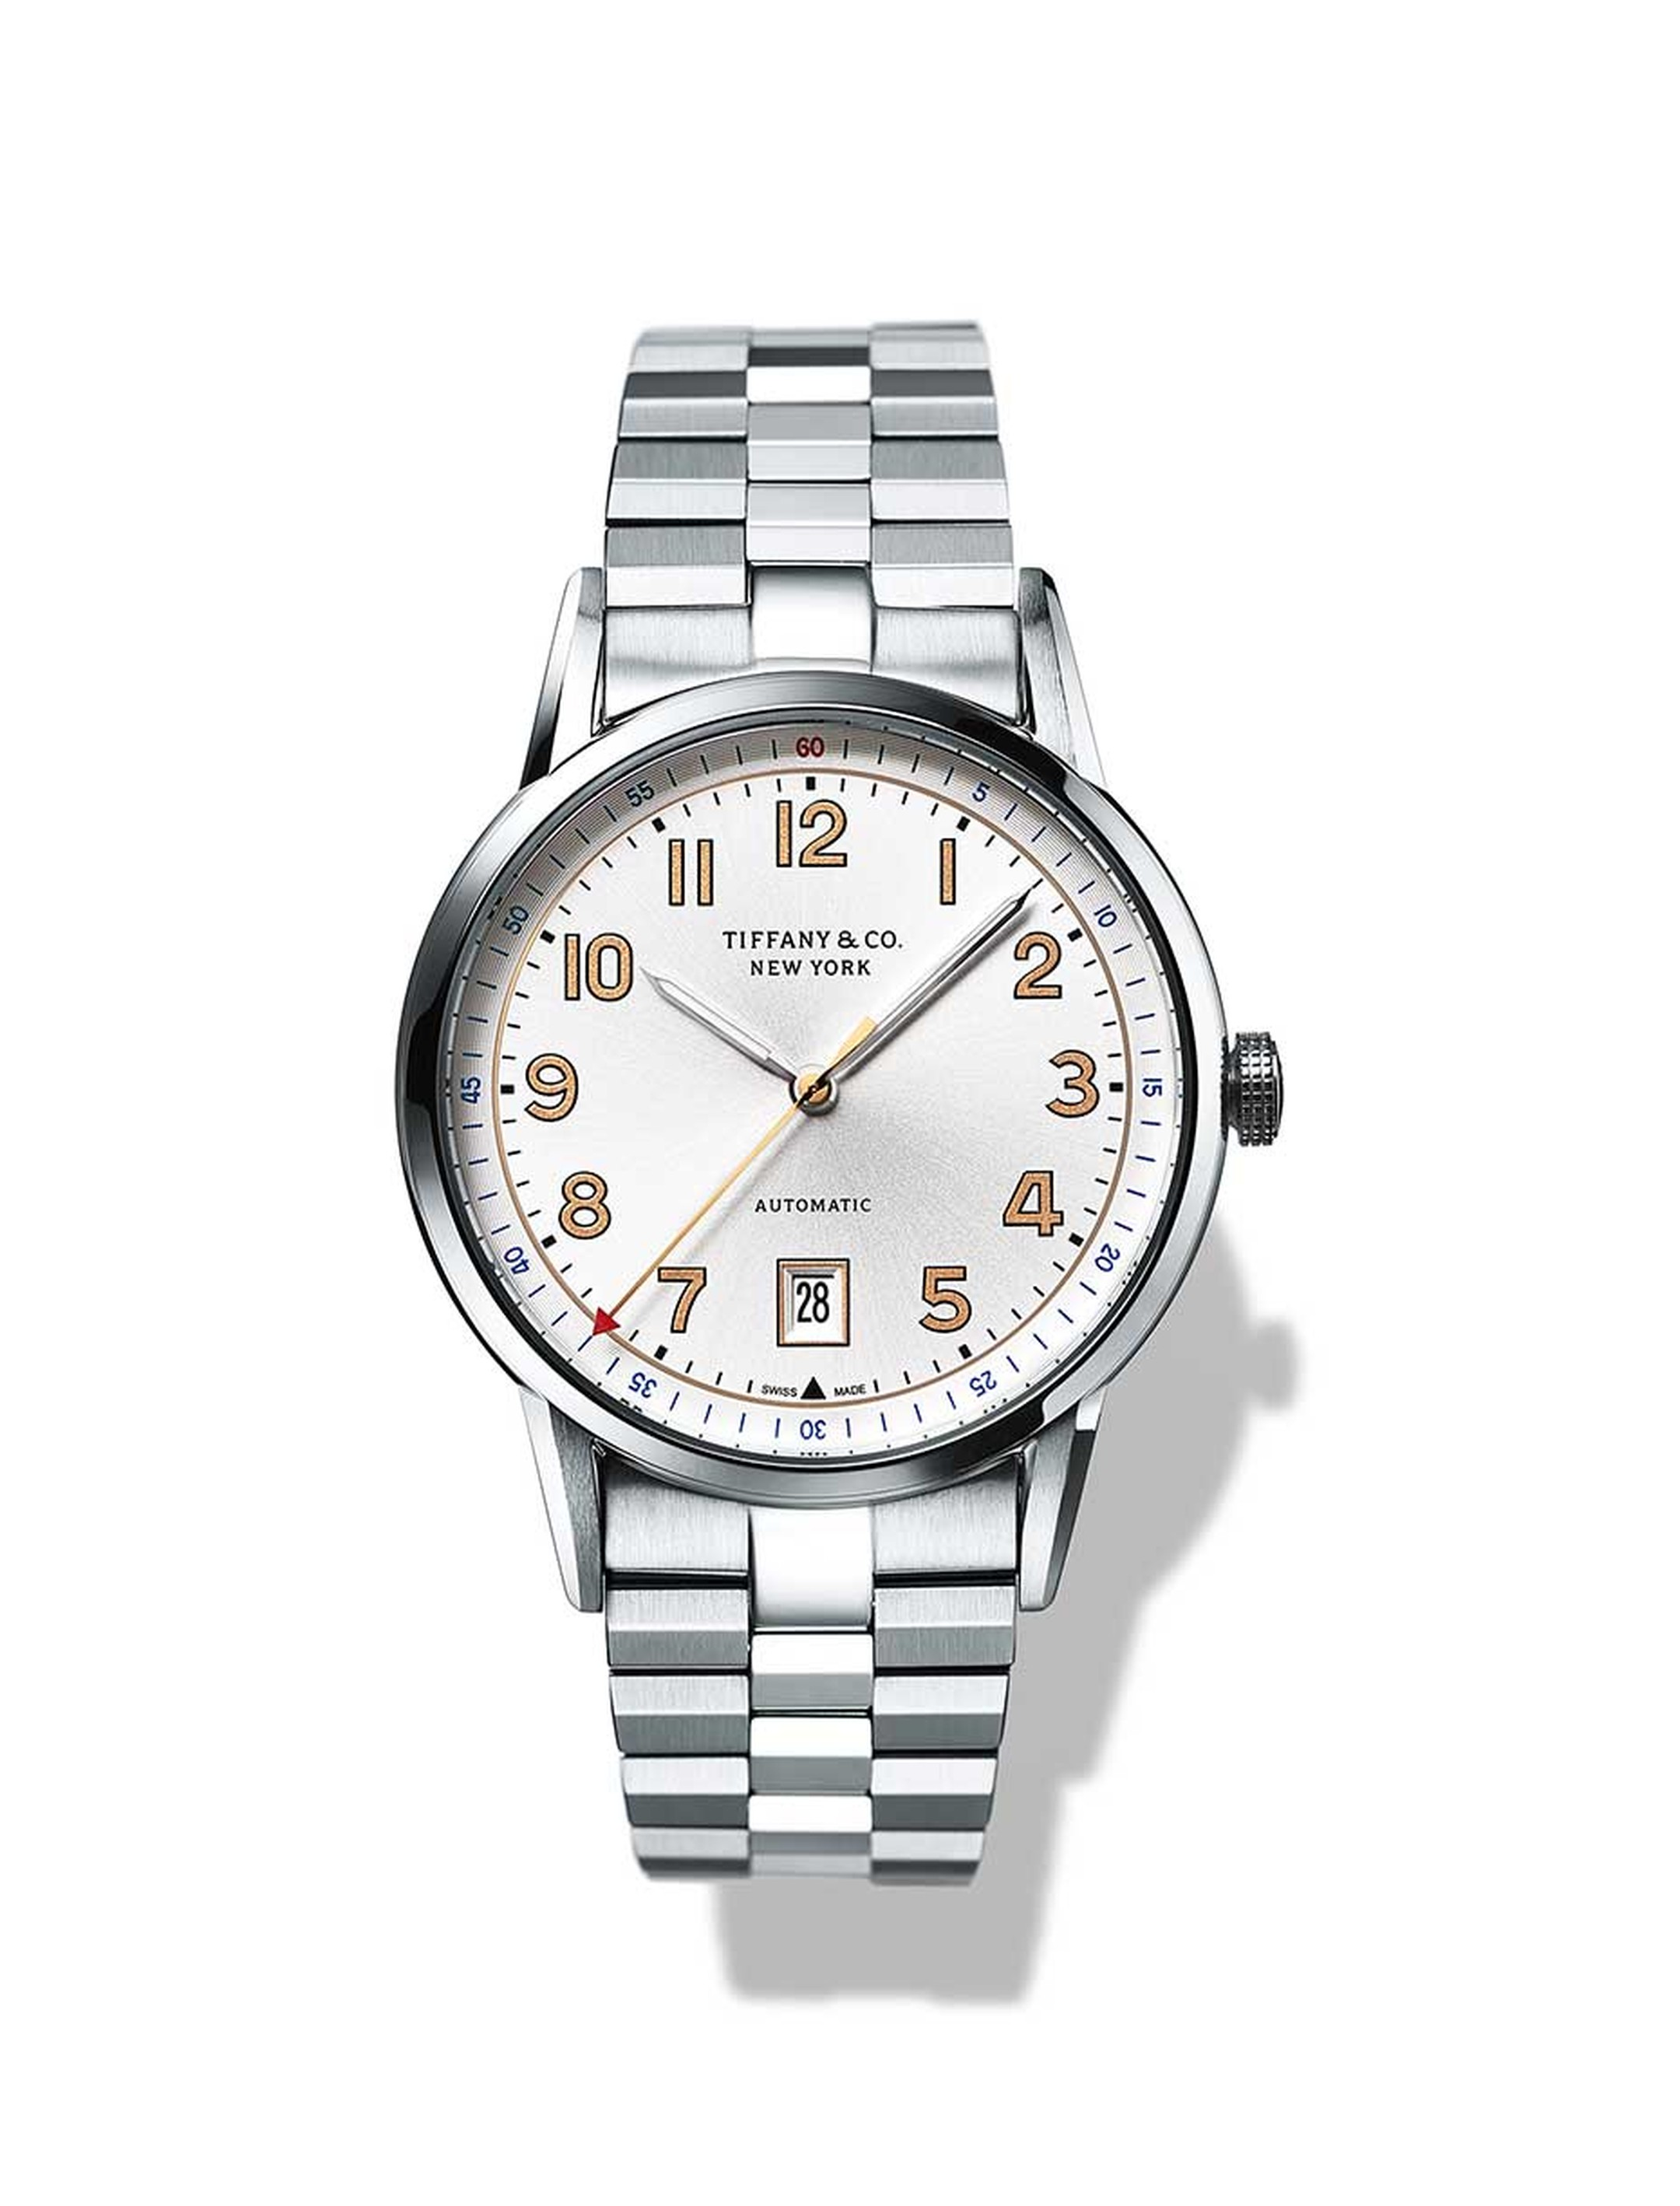 Tiffany and Co. CT60 3-Hand watch with a 40mm stainless steel case, white sunray dial and date window at 6 o'clock.